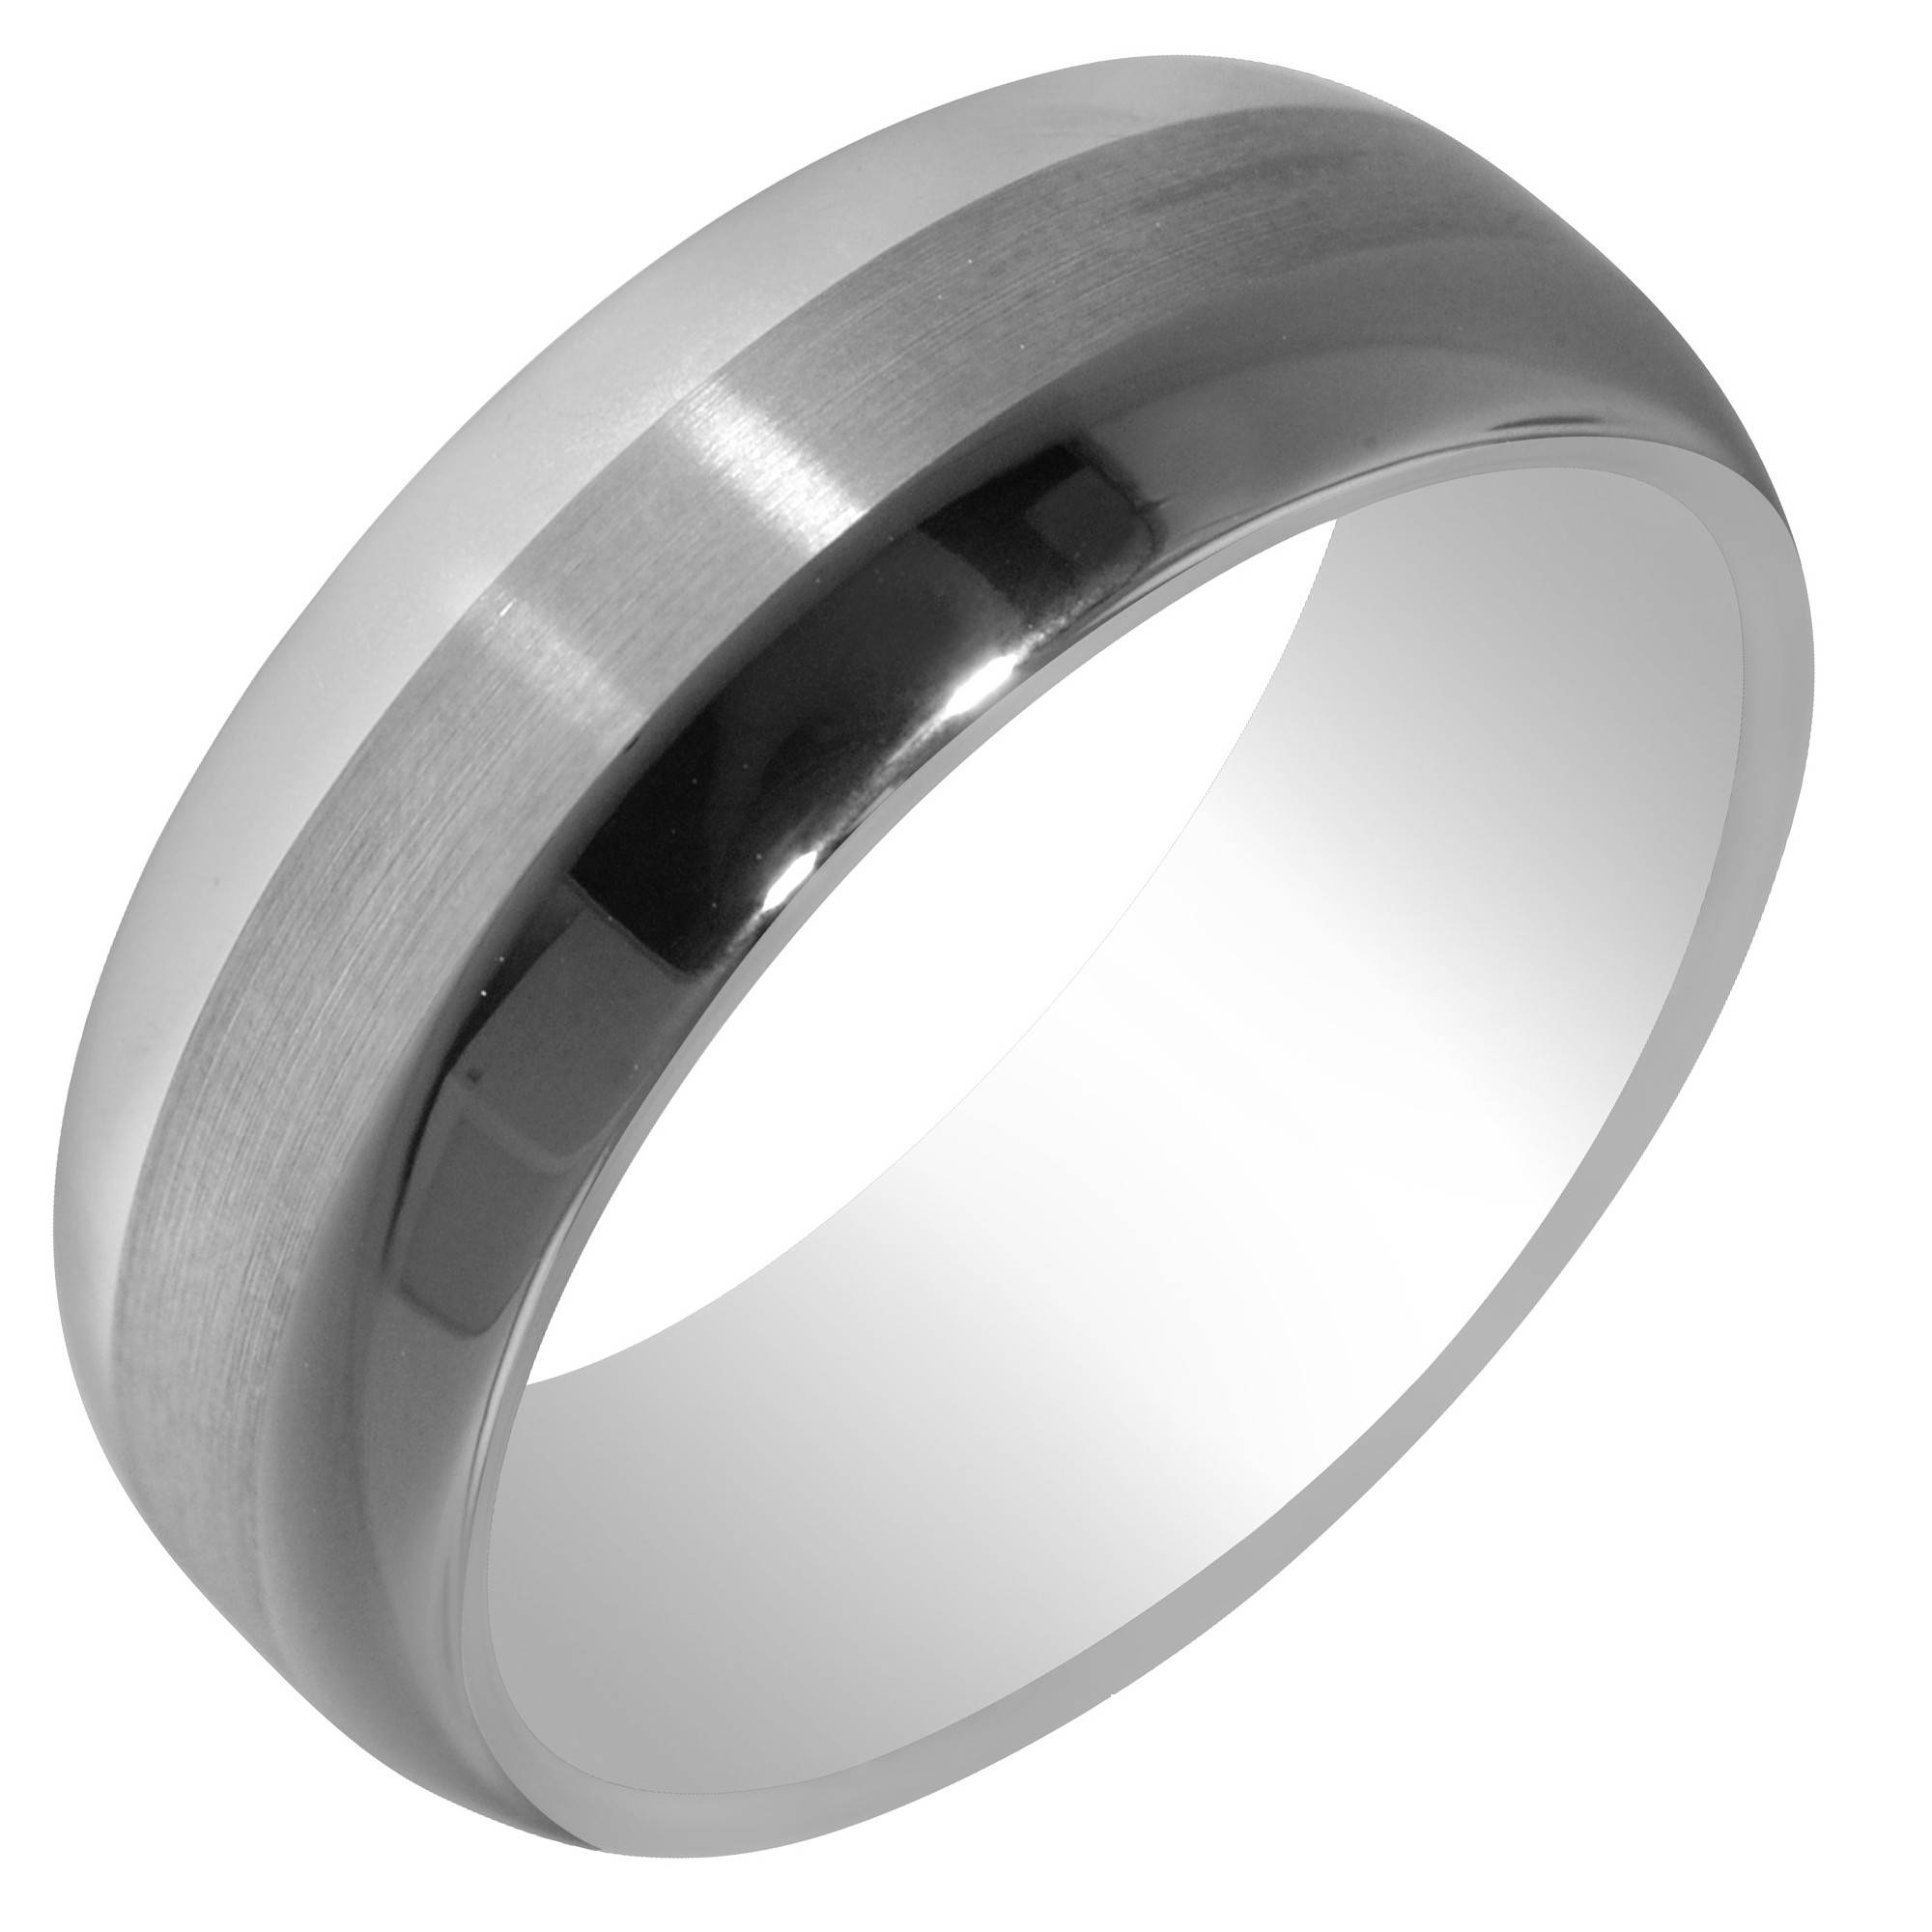 Artcarved Mens Orion Satin Wedding Band In Tungsten Carbide (8mm) Regarding Artcarved Men Wedding Bands (View 5 of 15)